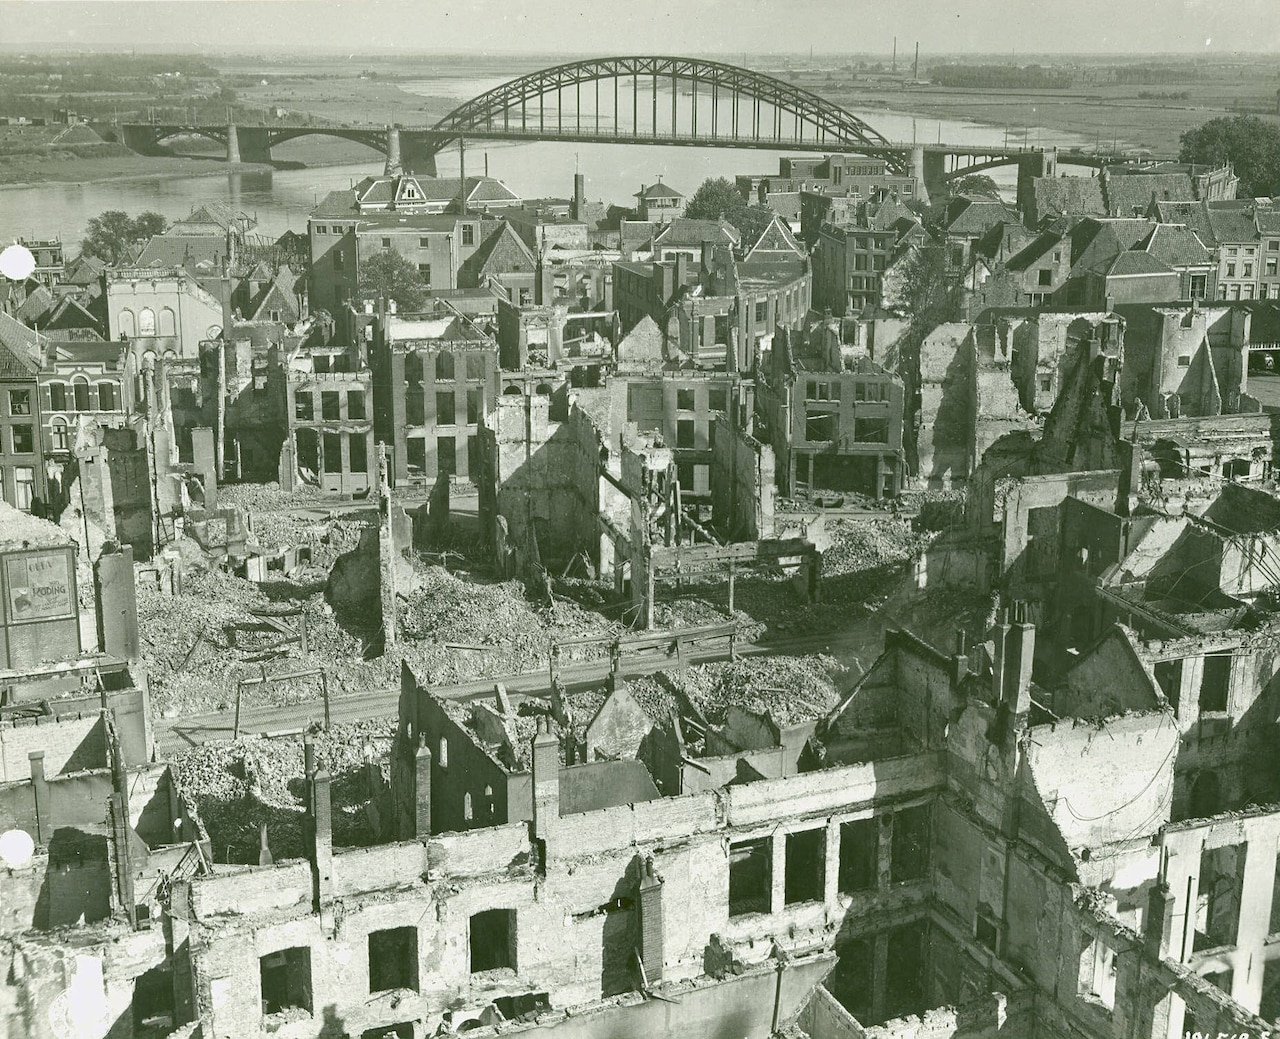 An aerial view of a town in which many of the buildings have been destroyed.